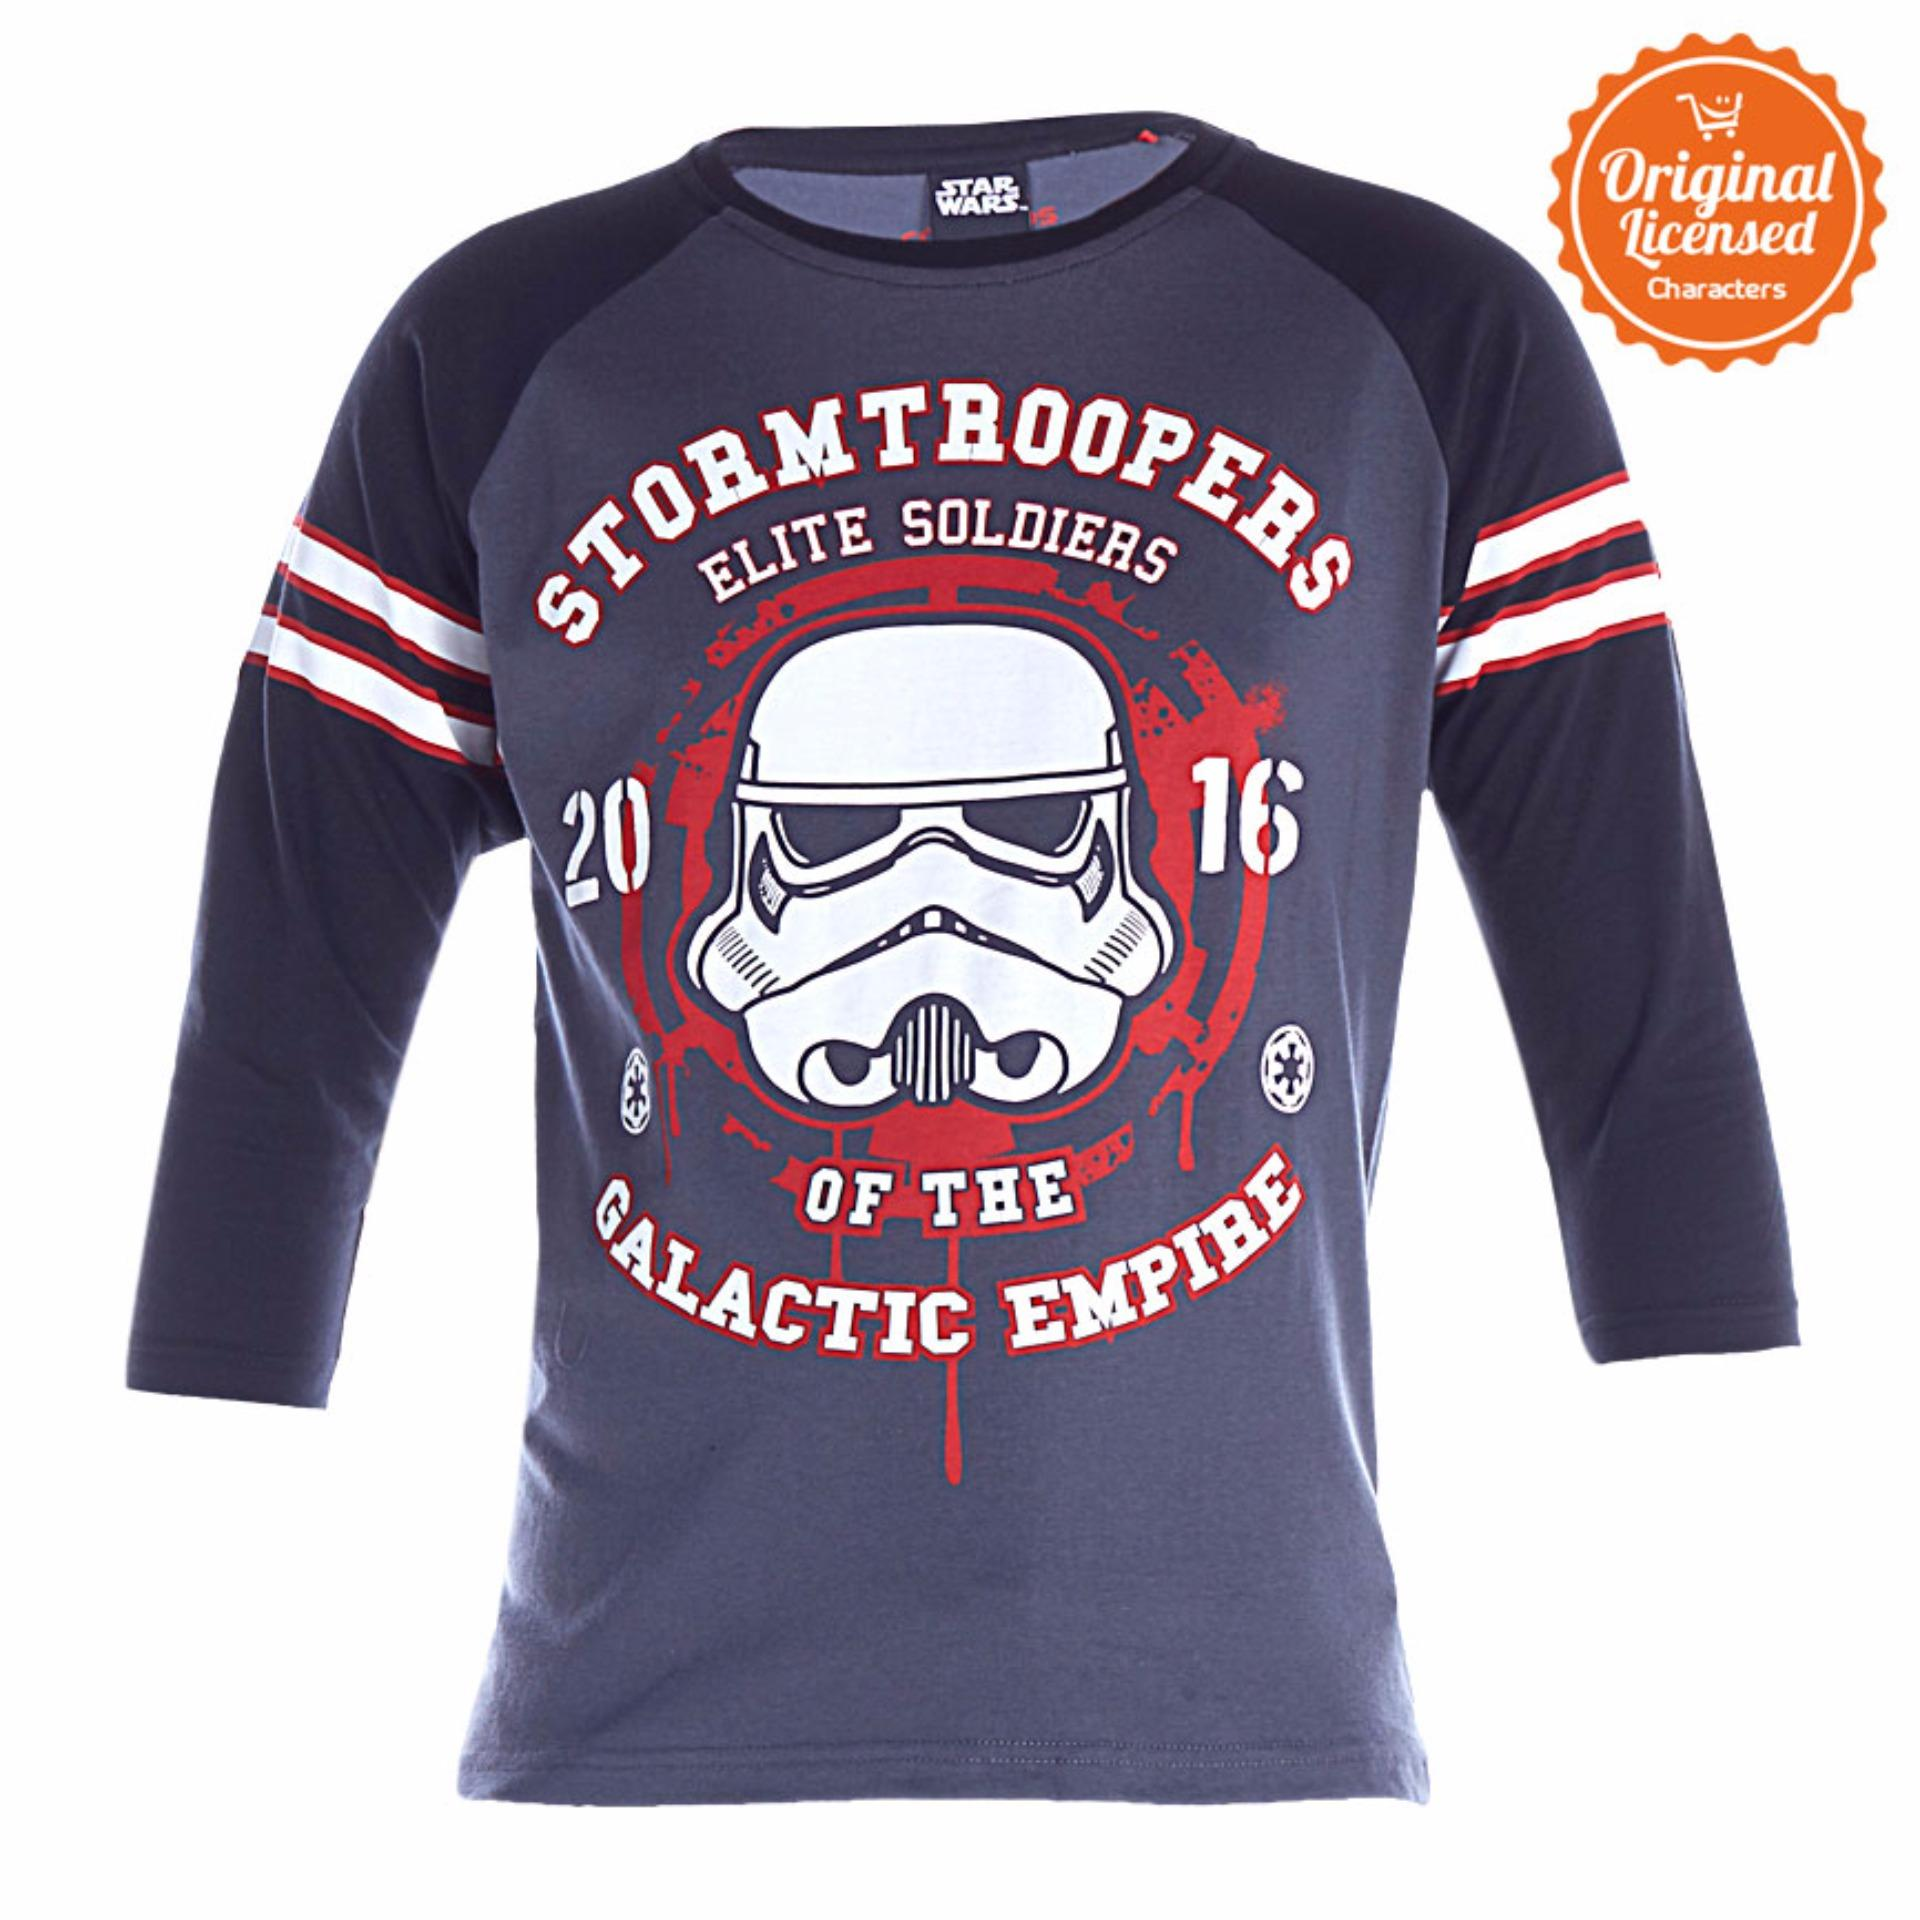 Harga Star Wars Rogue One Stormtrooper Galactic Empire T Shirt Raglan Abu Abu Satu Set